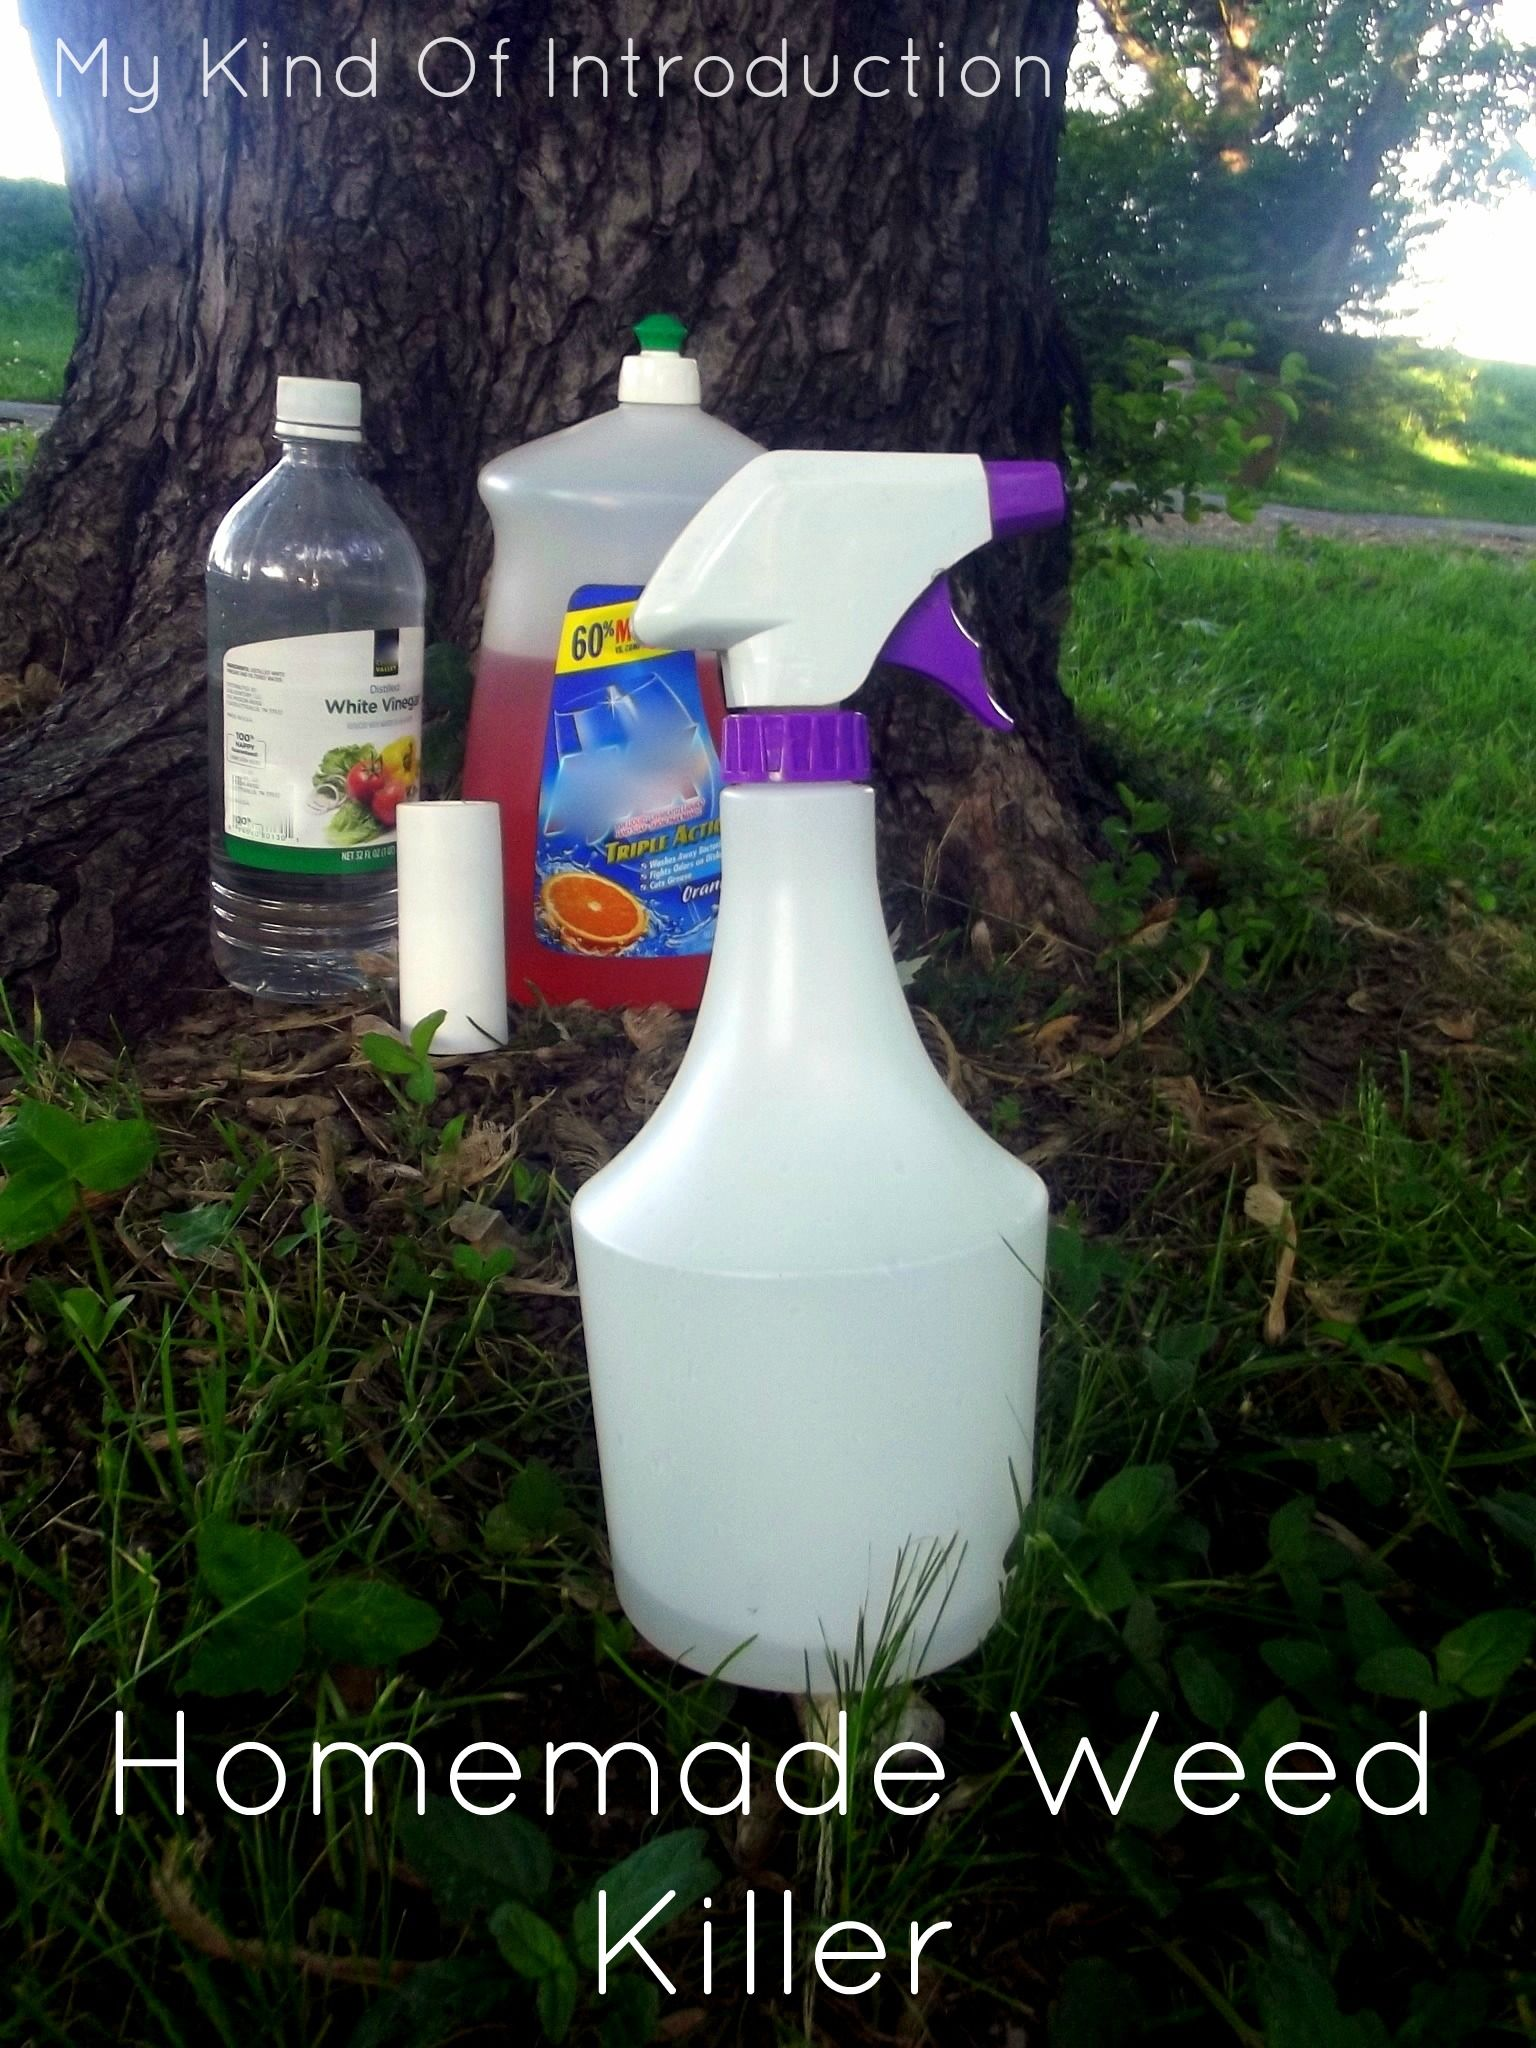 Homemade Weed Killer 1 Gallon Of White Vinegar Cup Salt Liquid Dish Soap Any Brand Empty Spray Bottle A Few Other Tricks With Just And Water For